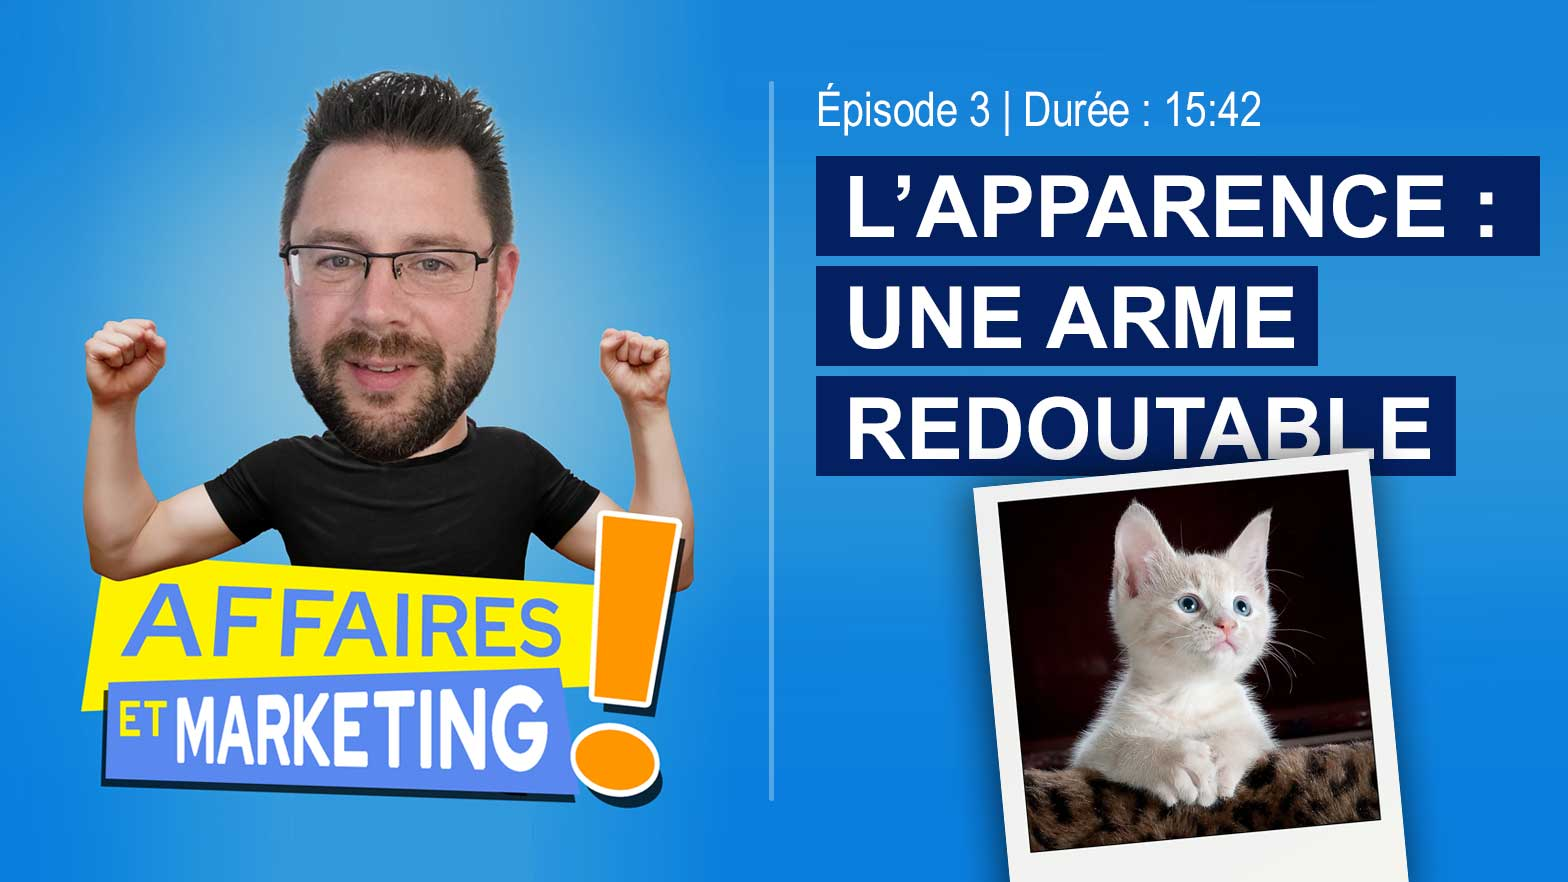 Podcast : L'apparence, une arme redoutable